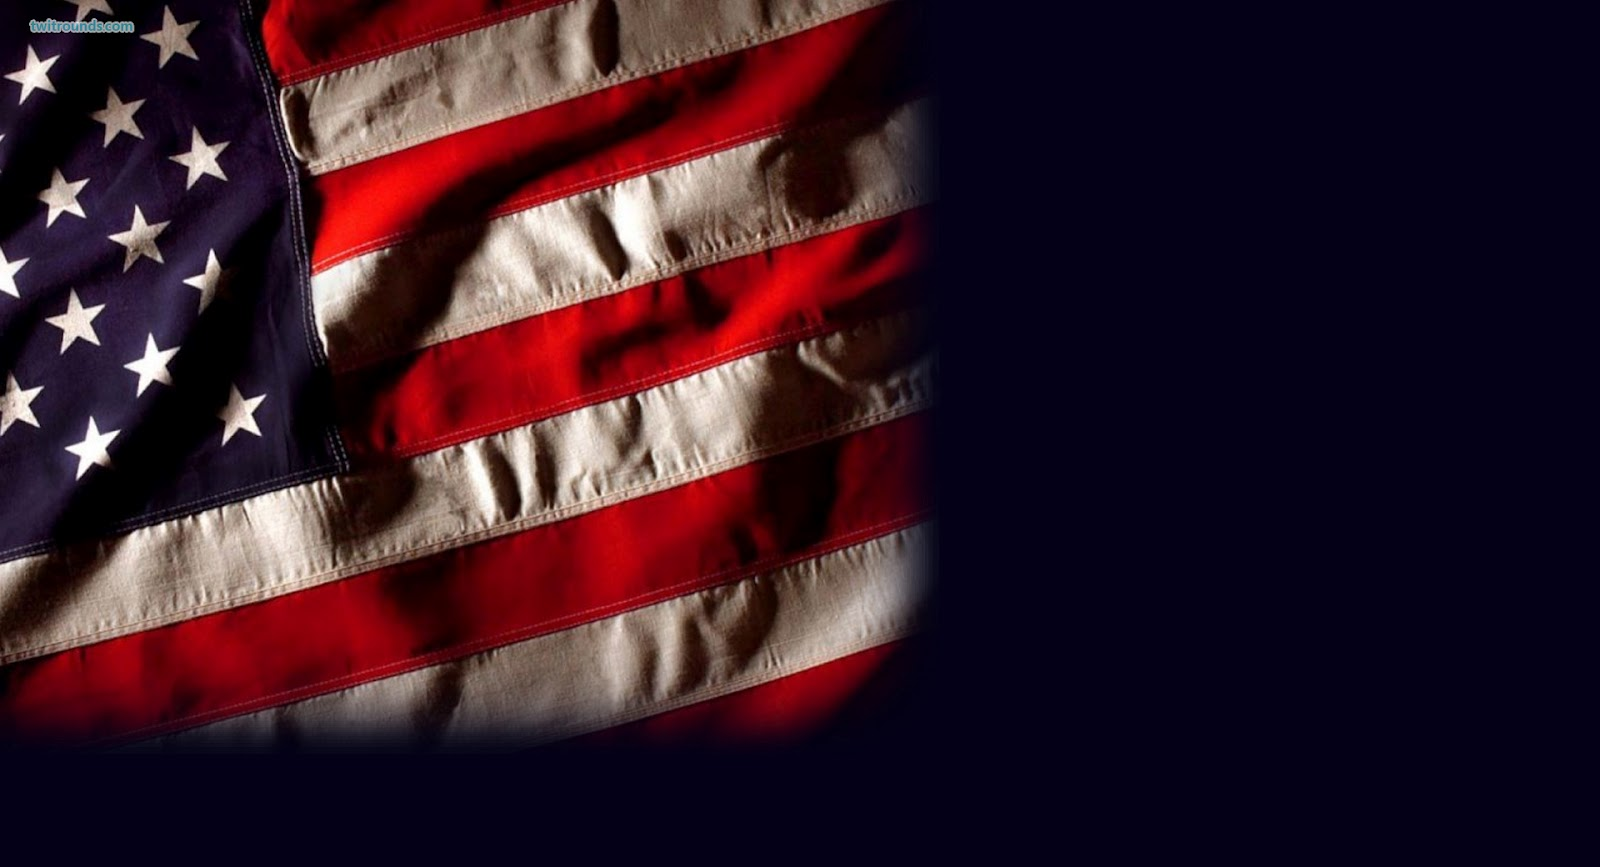 American flag wallpaper pictures american flag publicscrutiny Image collections